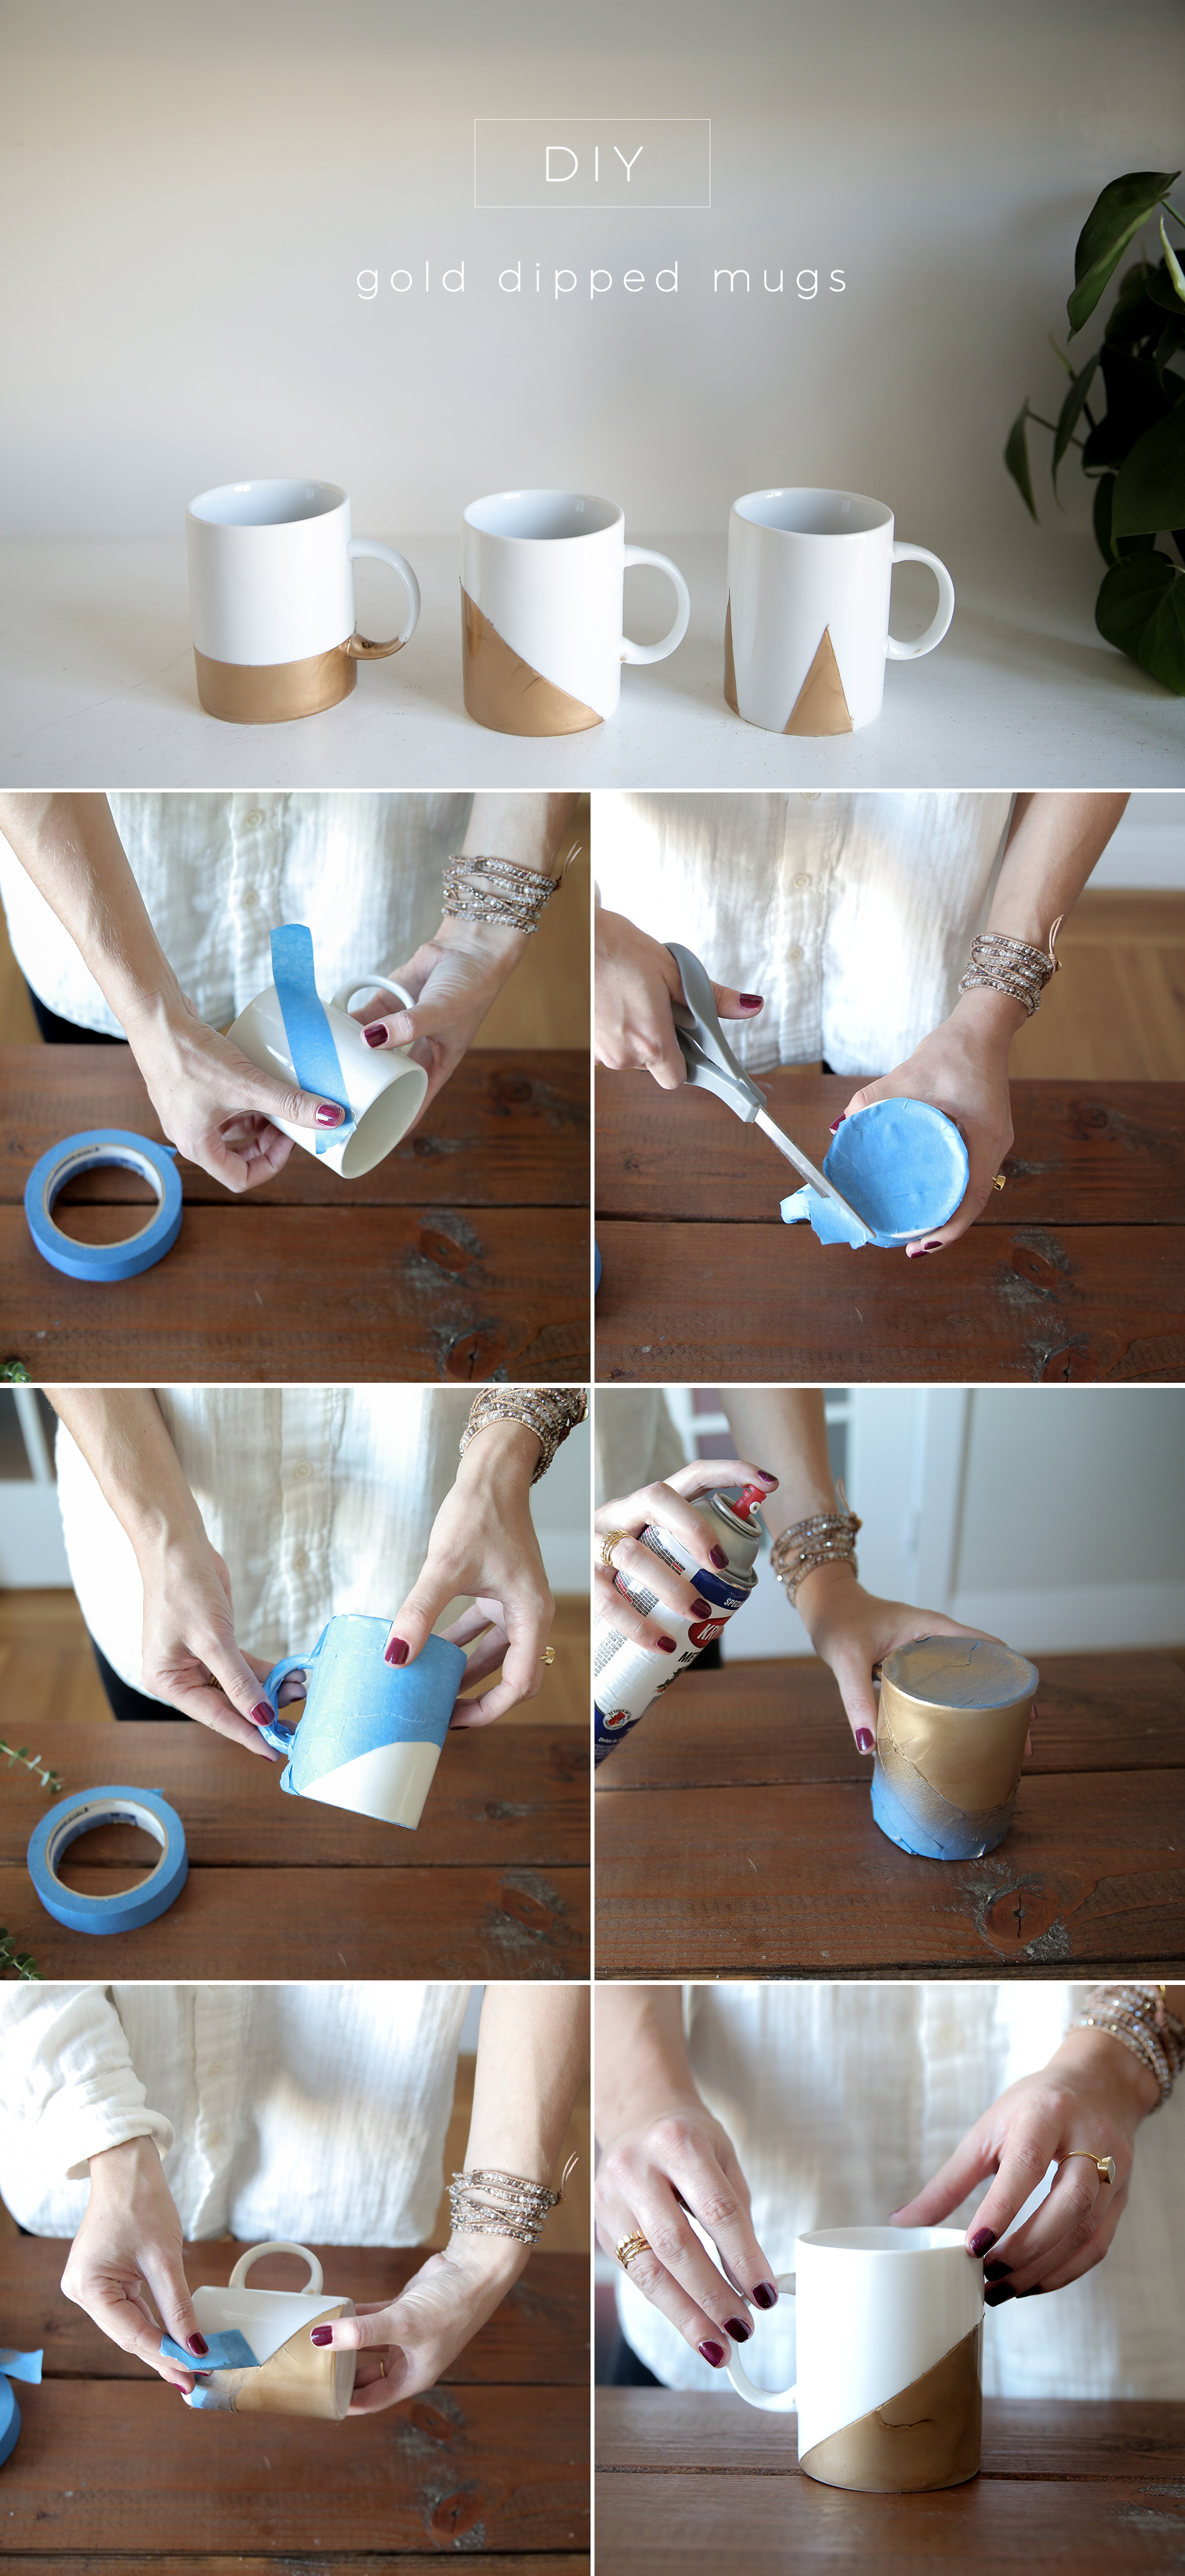 Gold Dipped Mugs Tutorial, Diy Gift Idea, Step By Step Tutorial, Pictures